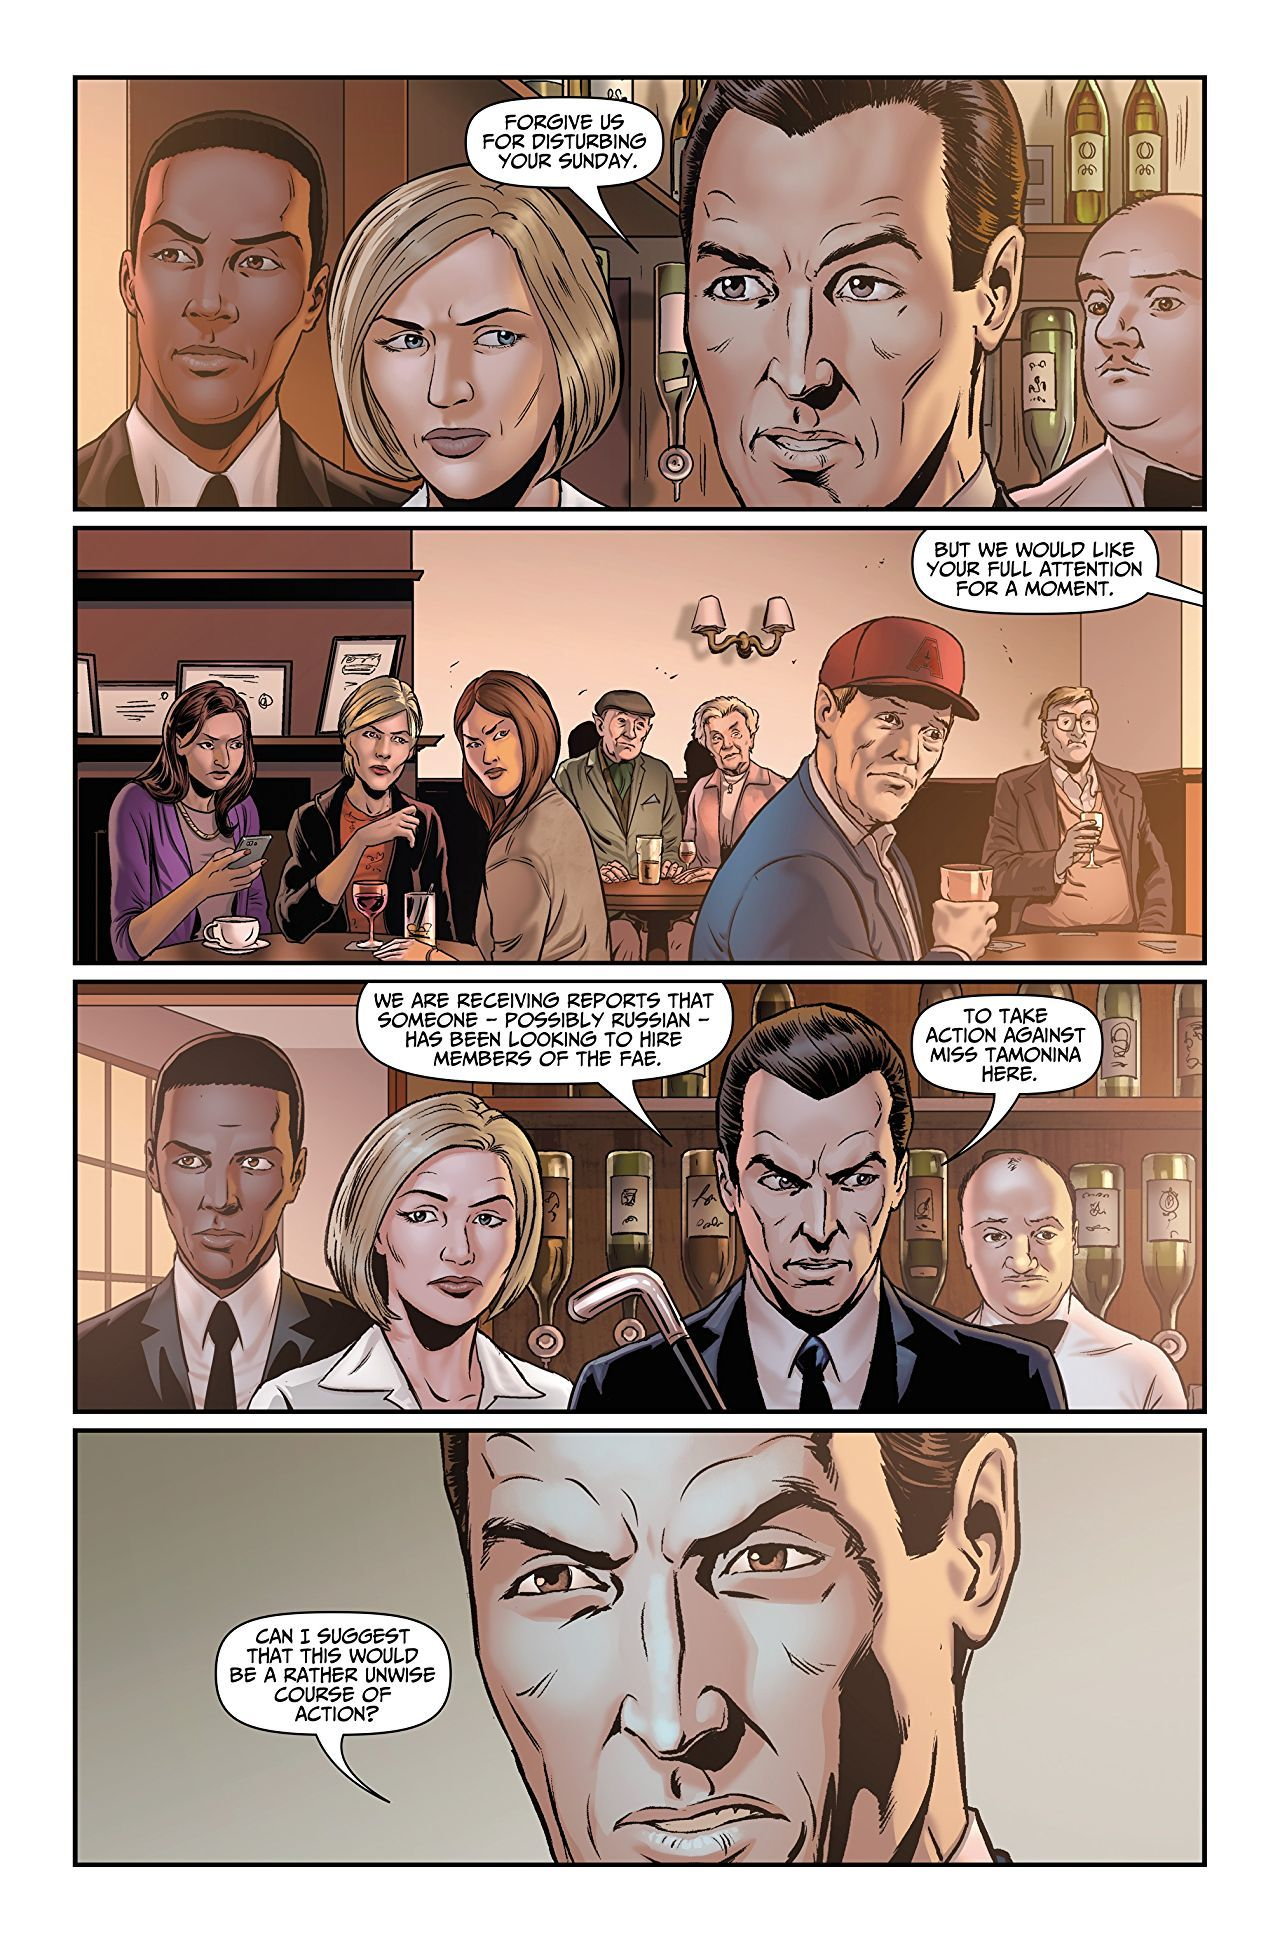 Comic Inspiration For Thomas Nightingale Peter Grant And Lesley May From Rivers Of London